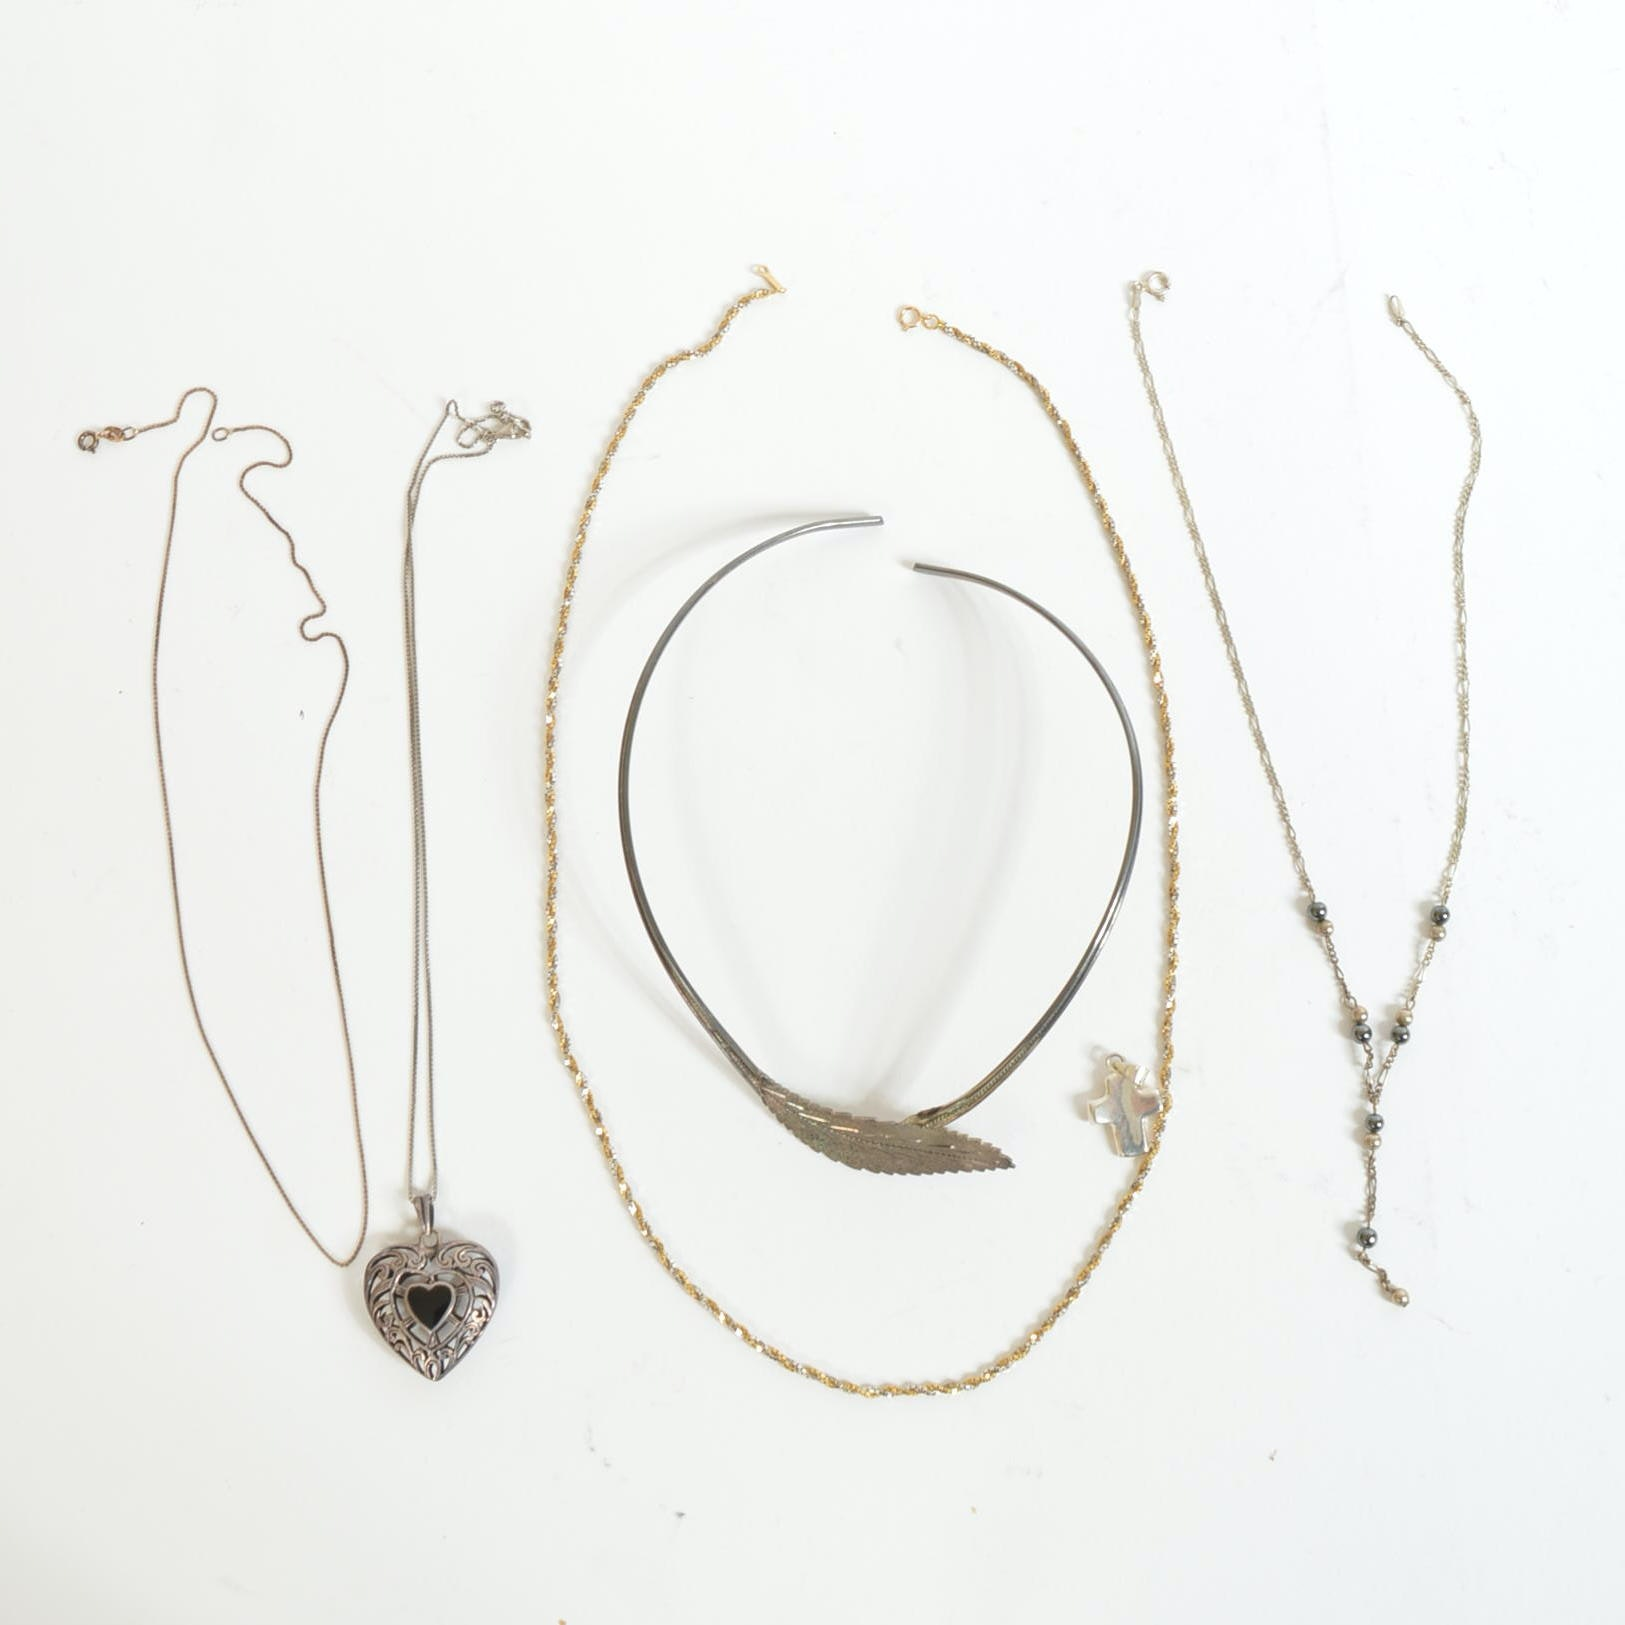 Assortment of Sterling Silver Necklaces